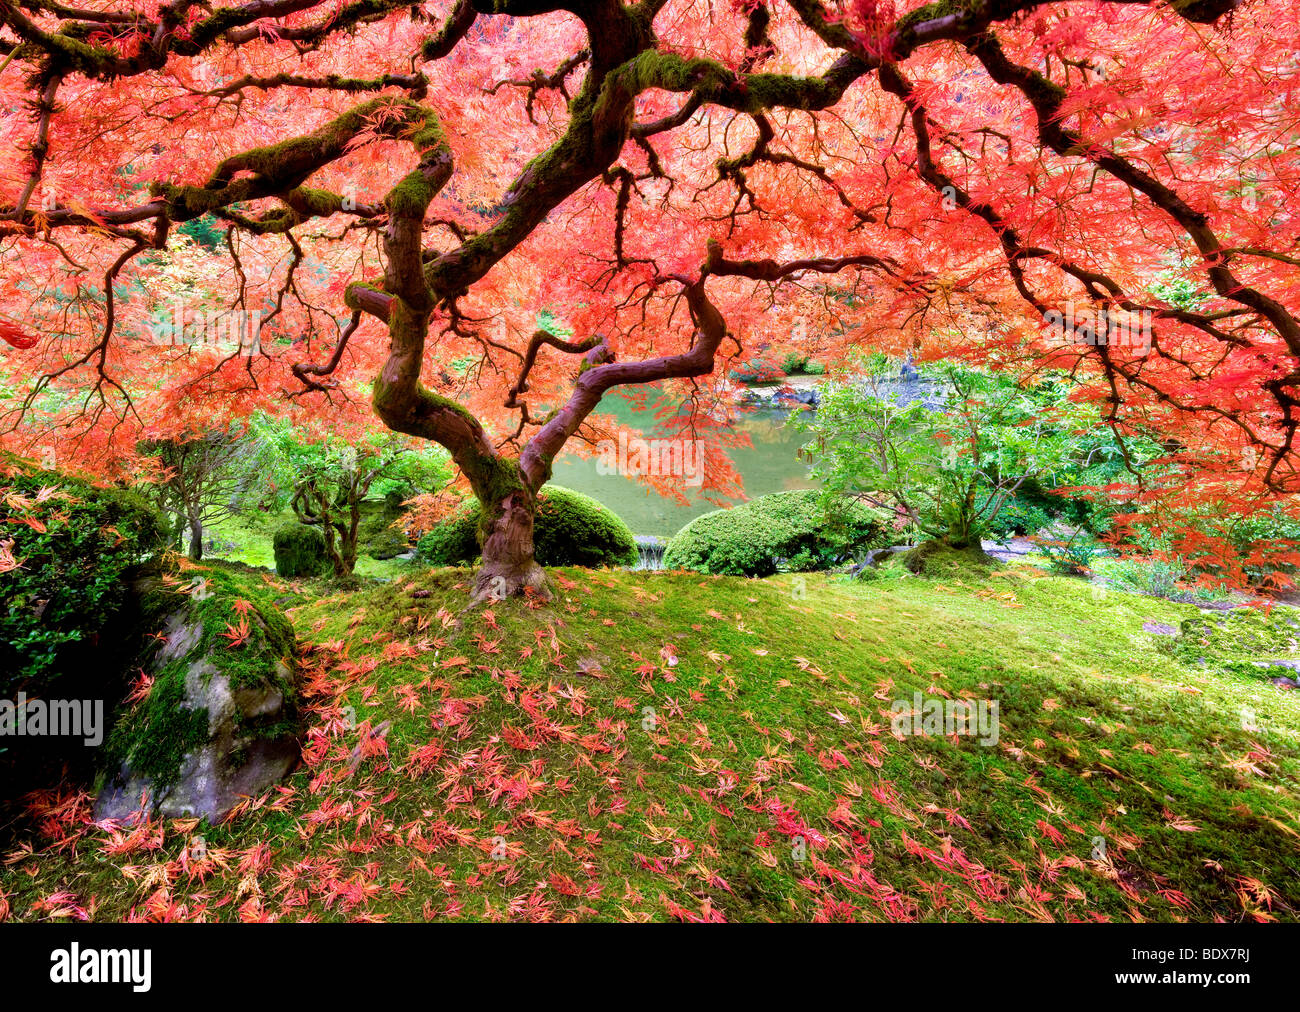 Japanese Maple tree in fall color. Portland Japanese Gardens. Oregon - Stock Image